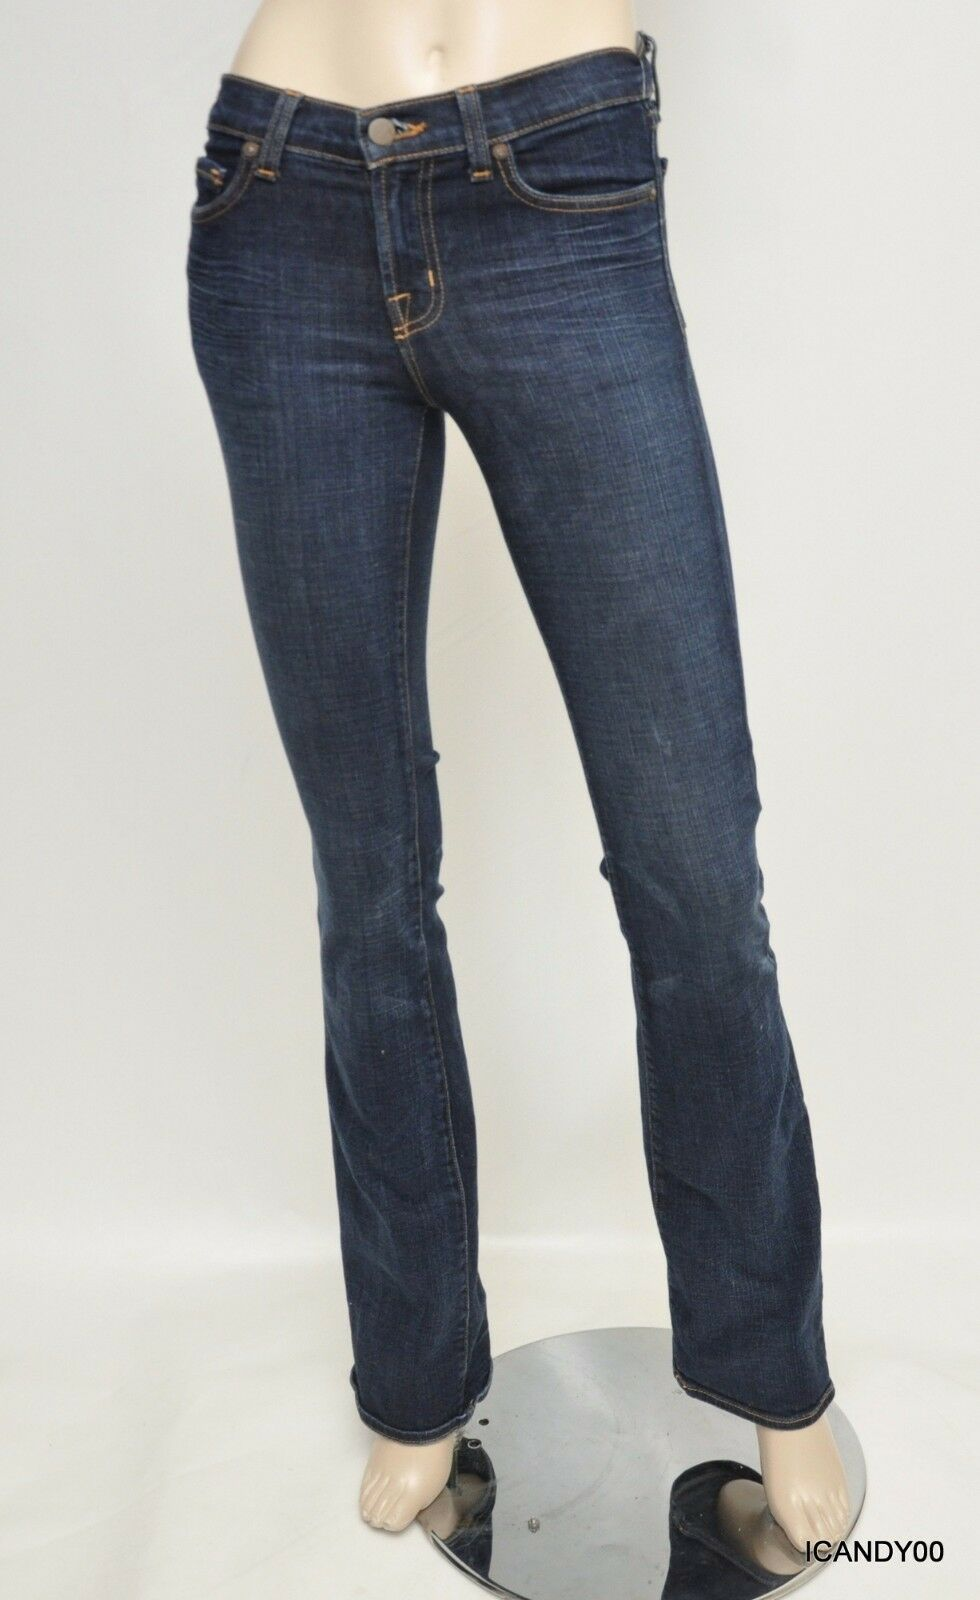 New  209 J Brand 118 Mid-Rise Boot-Cut Stretch Denim Jeans Pants Trousers Cry 25